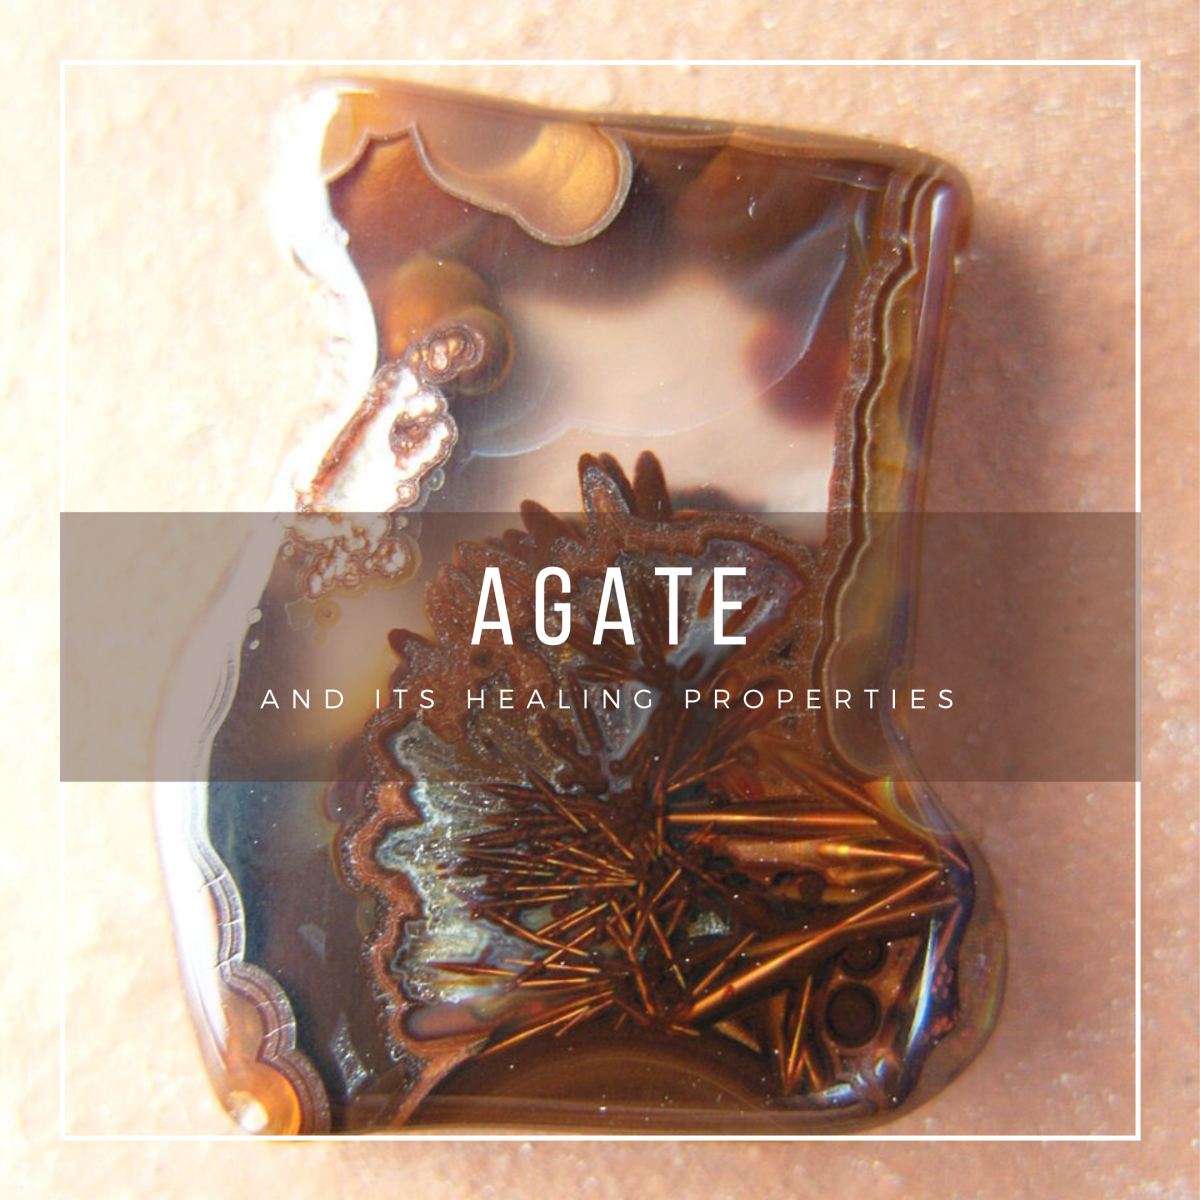 Seven Varieties of Agate and Their Healing Properties